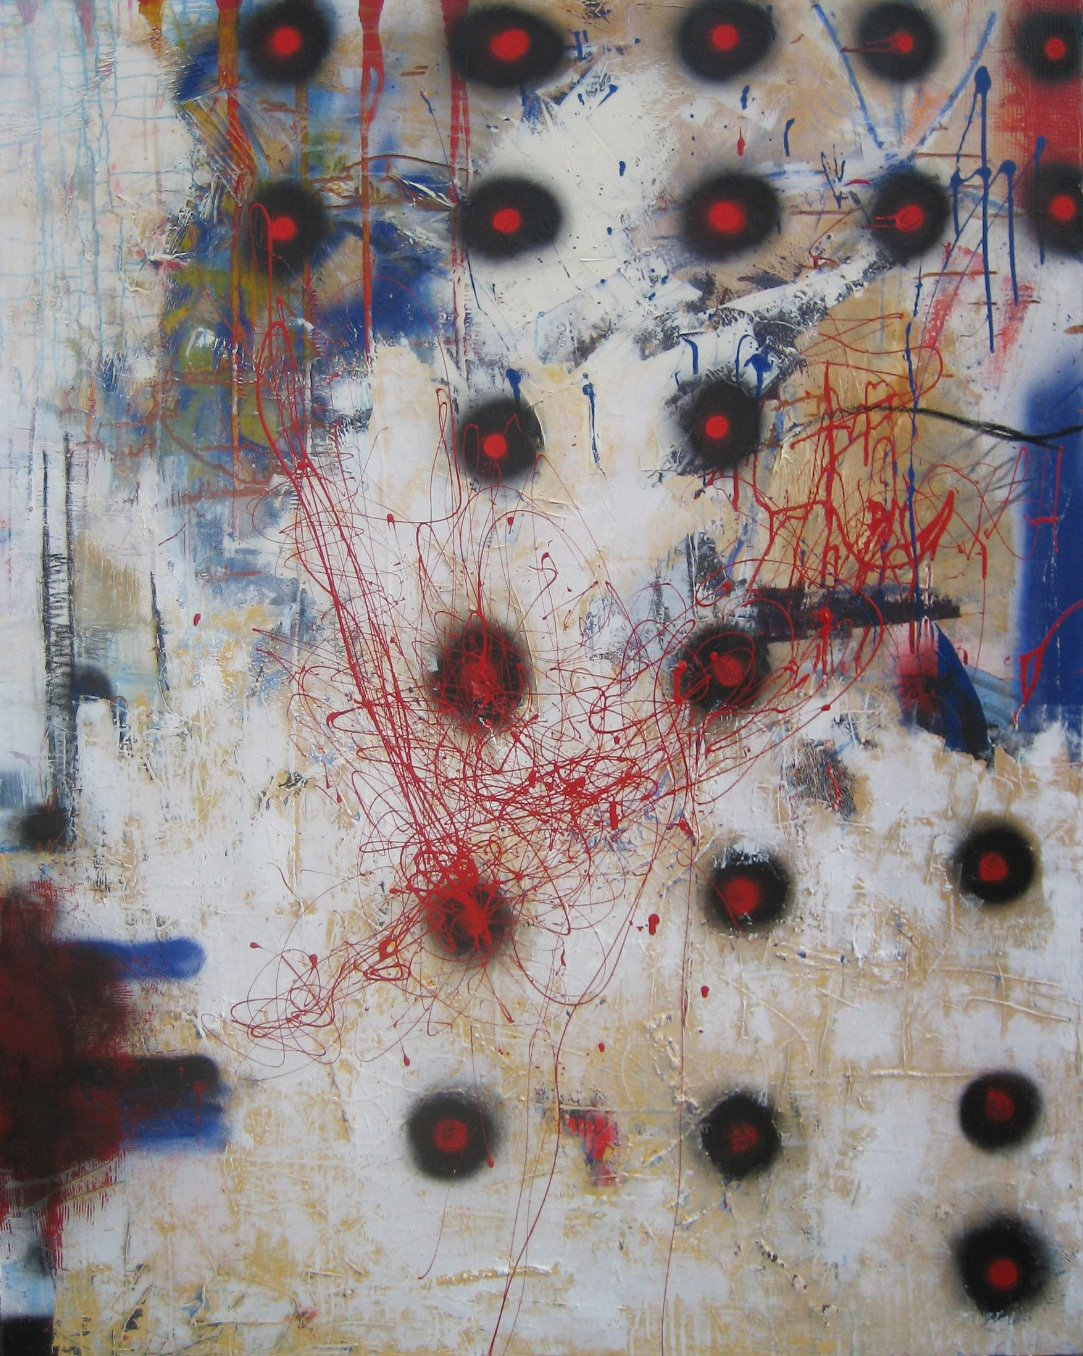 Dot 4'x5' Oil, enamel, charcoal, and spray paint